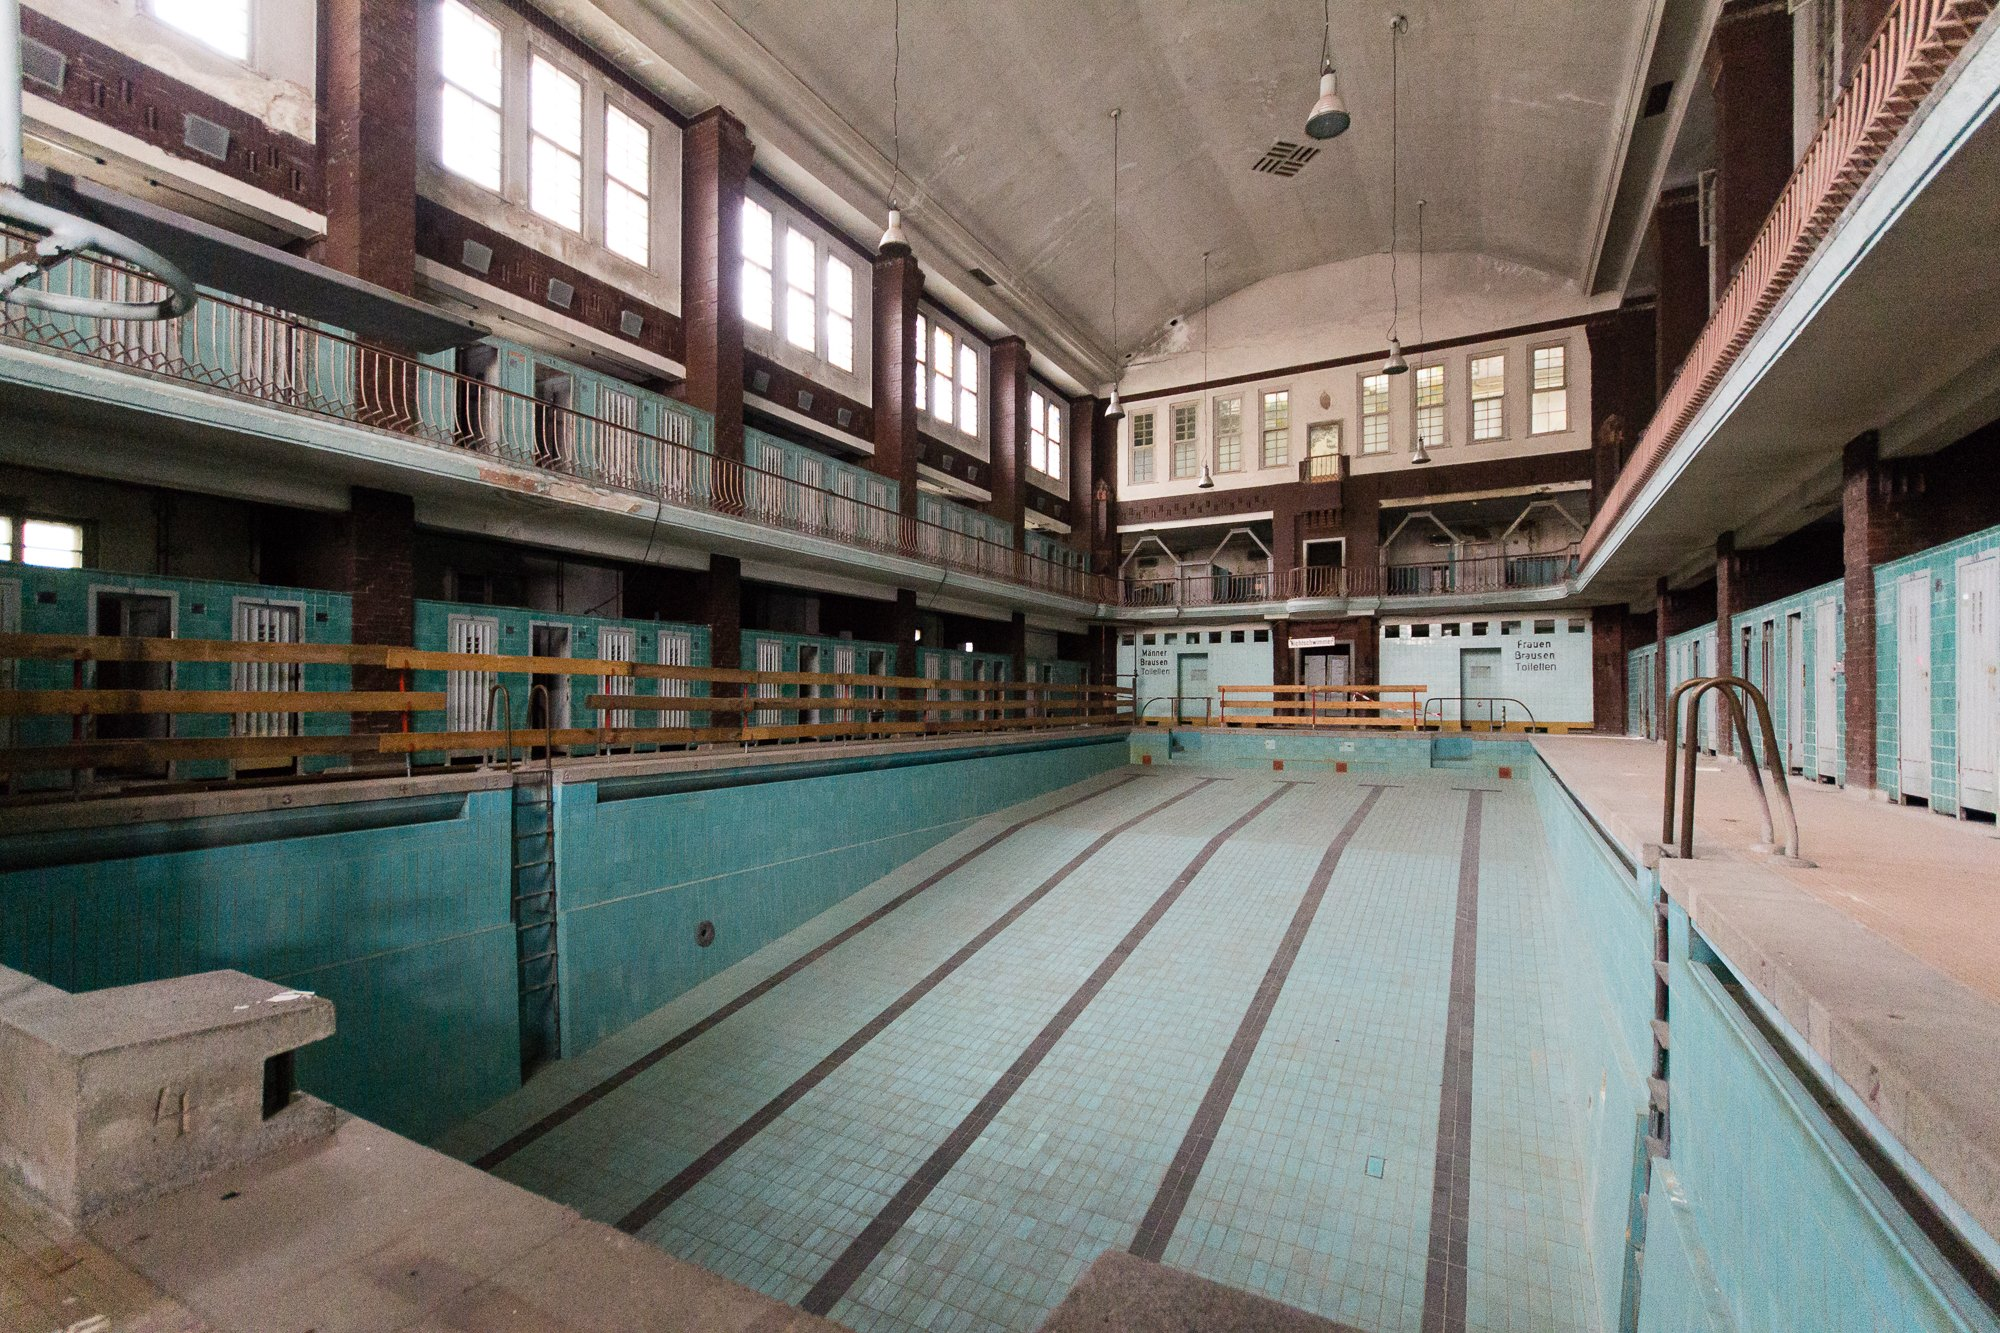 Swimmingpool Berlin Abandoned Berlin Photographs From An Urban Explorer